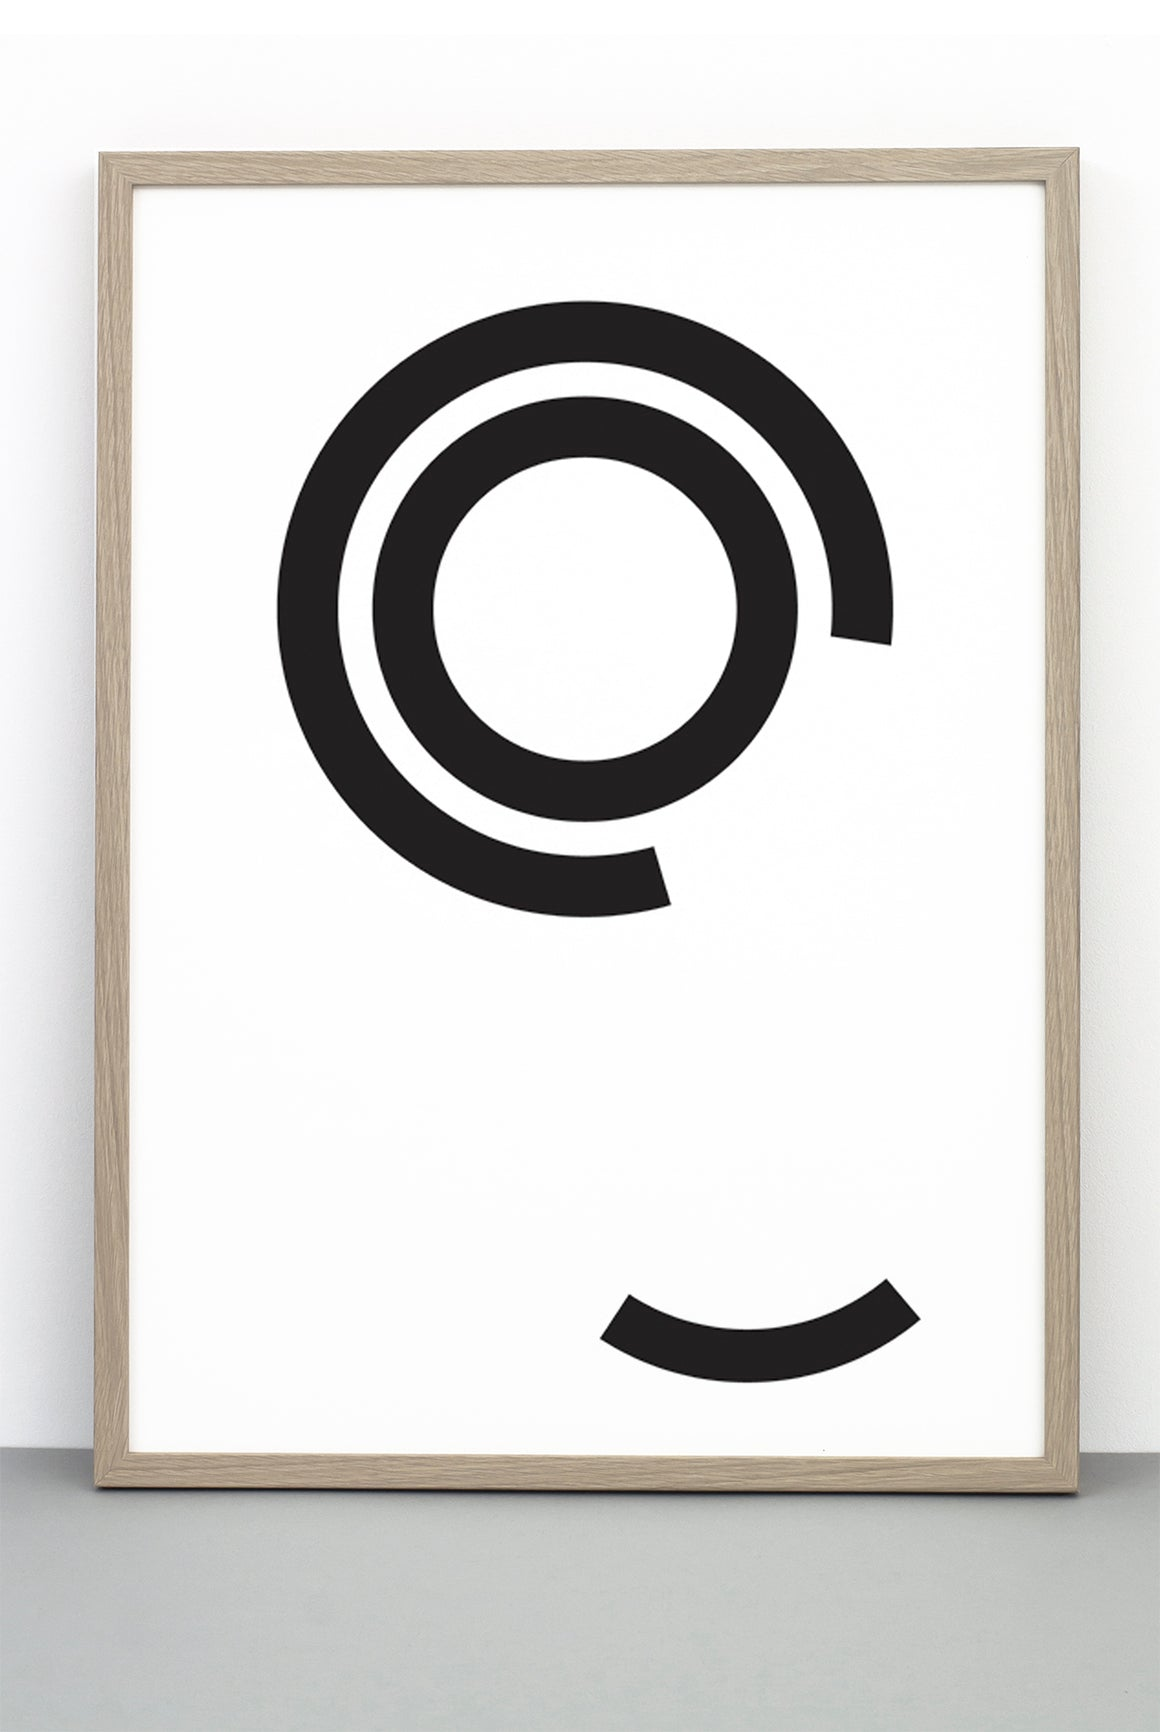 WHOLESALE DISTURBED CIRCLES PRINT, A BOLD BLACK AND WHITE MONOCHROME POSTER